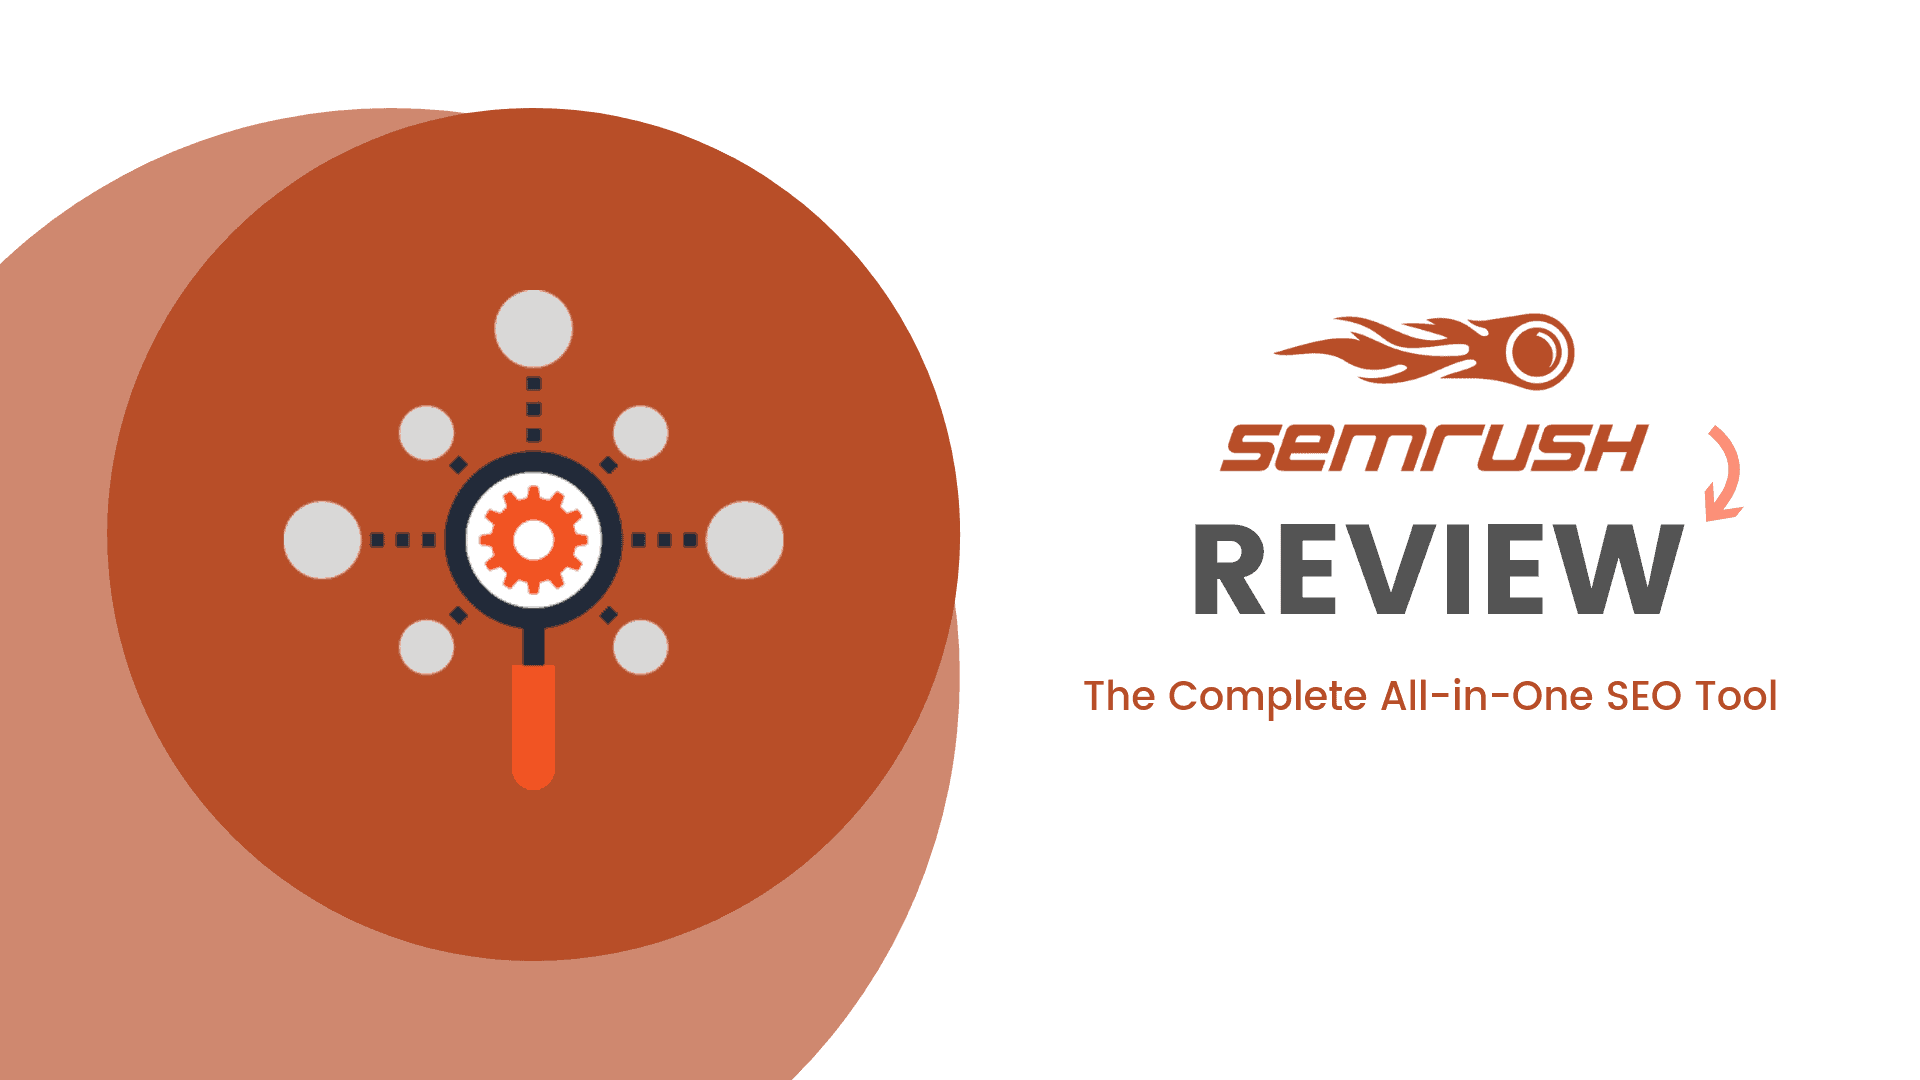 Buy Seo Software Semrush Price Fall